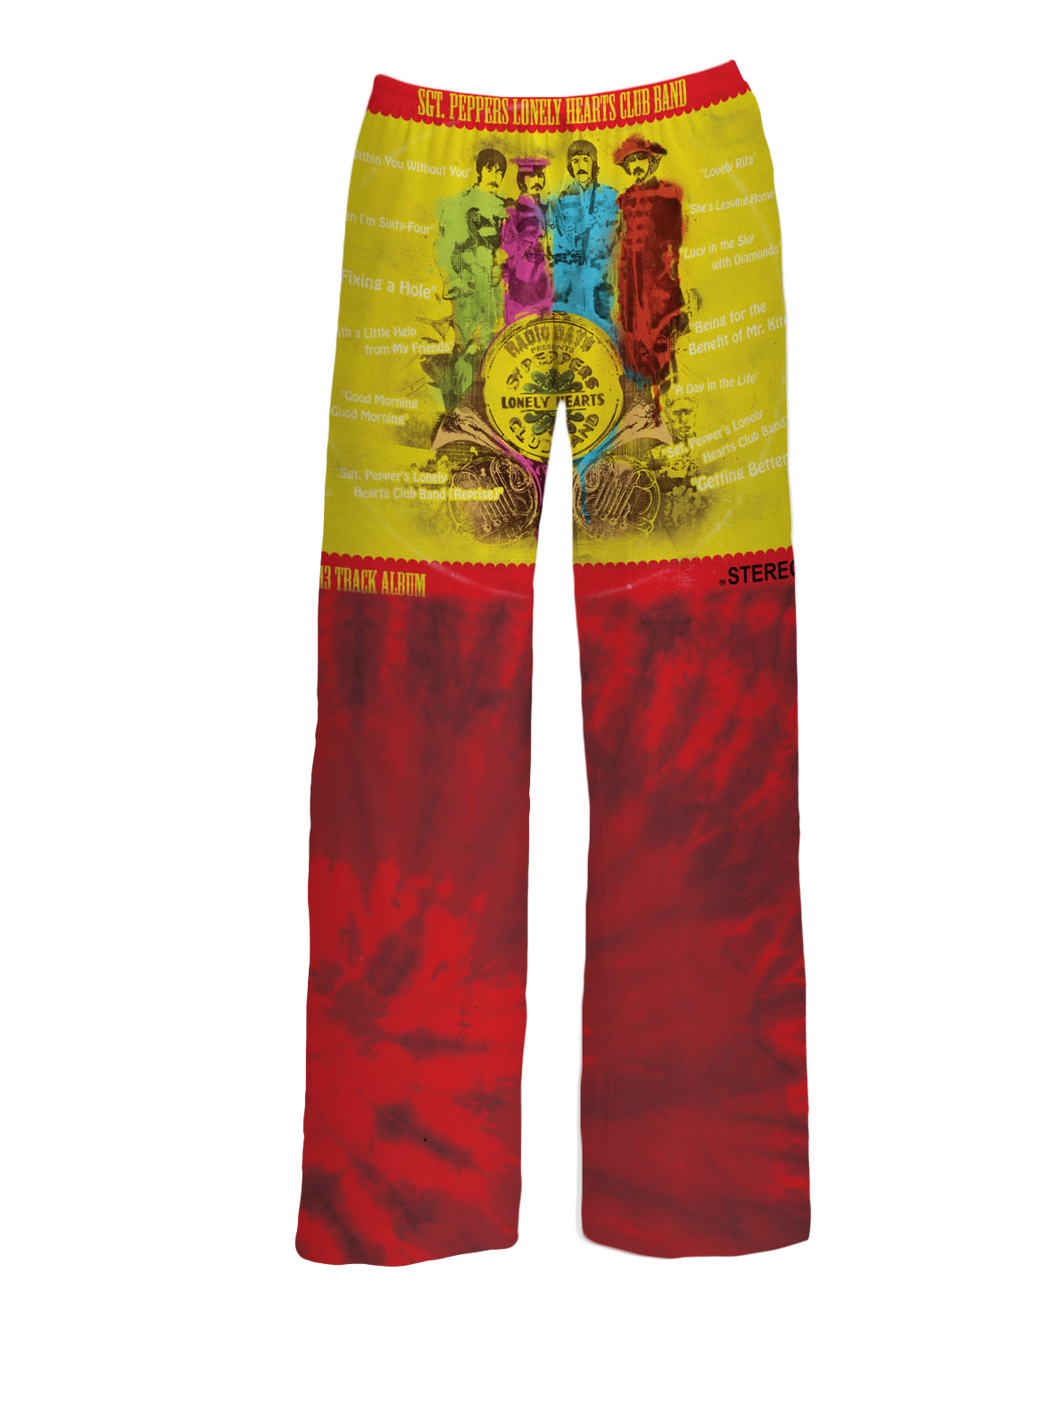 Sgt. Peppers Pajama Pants